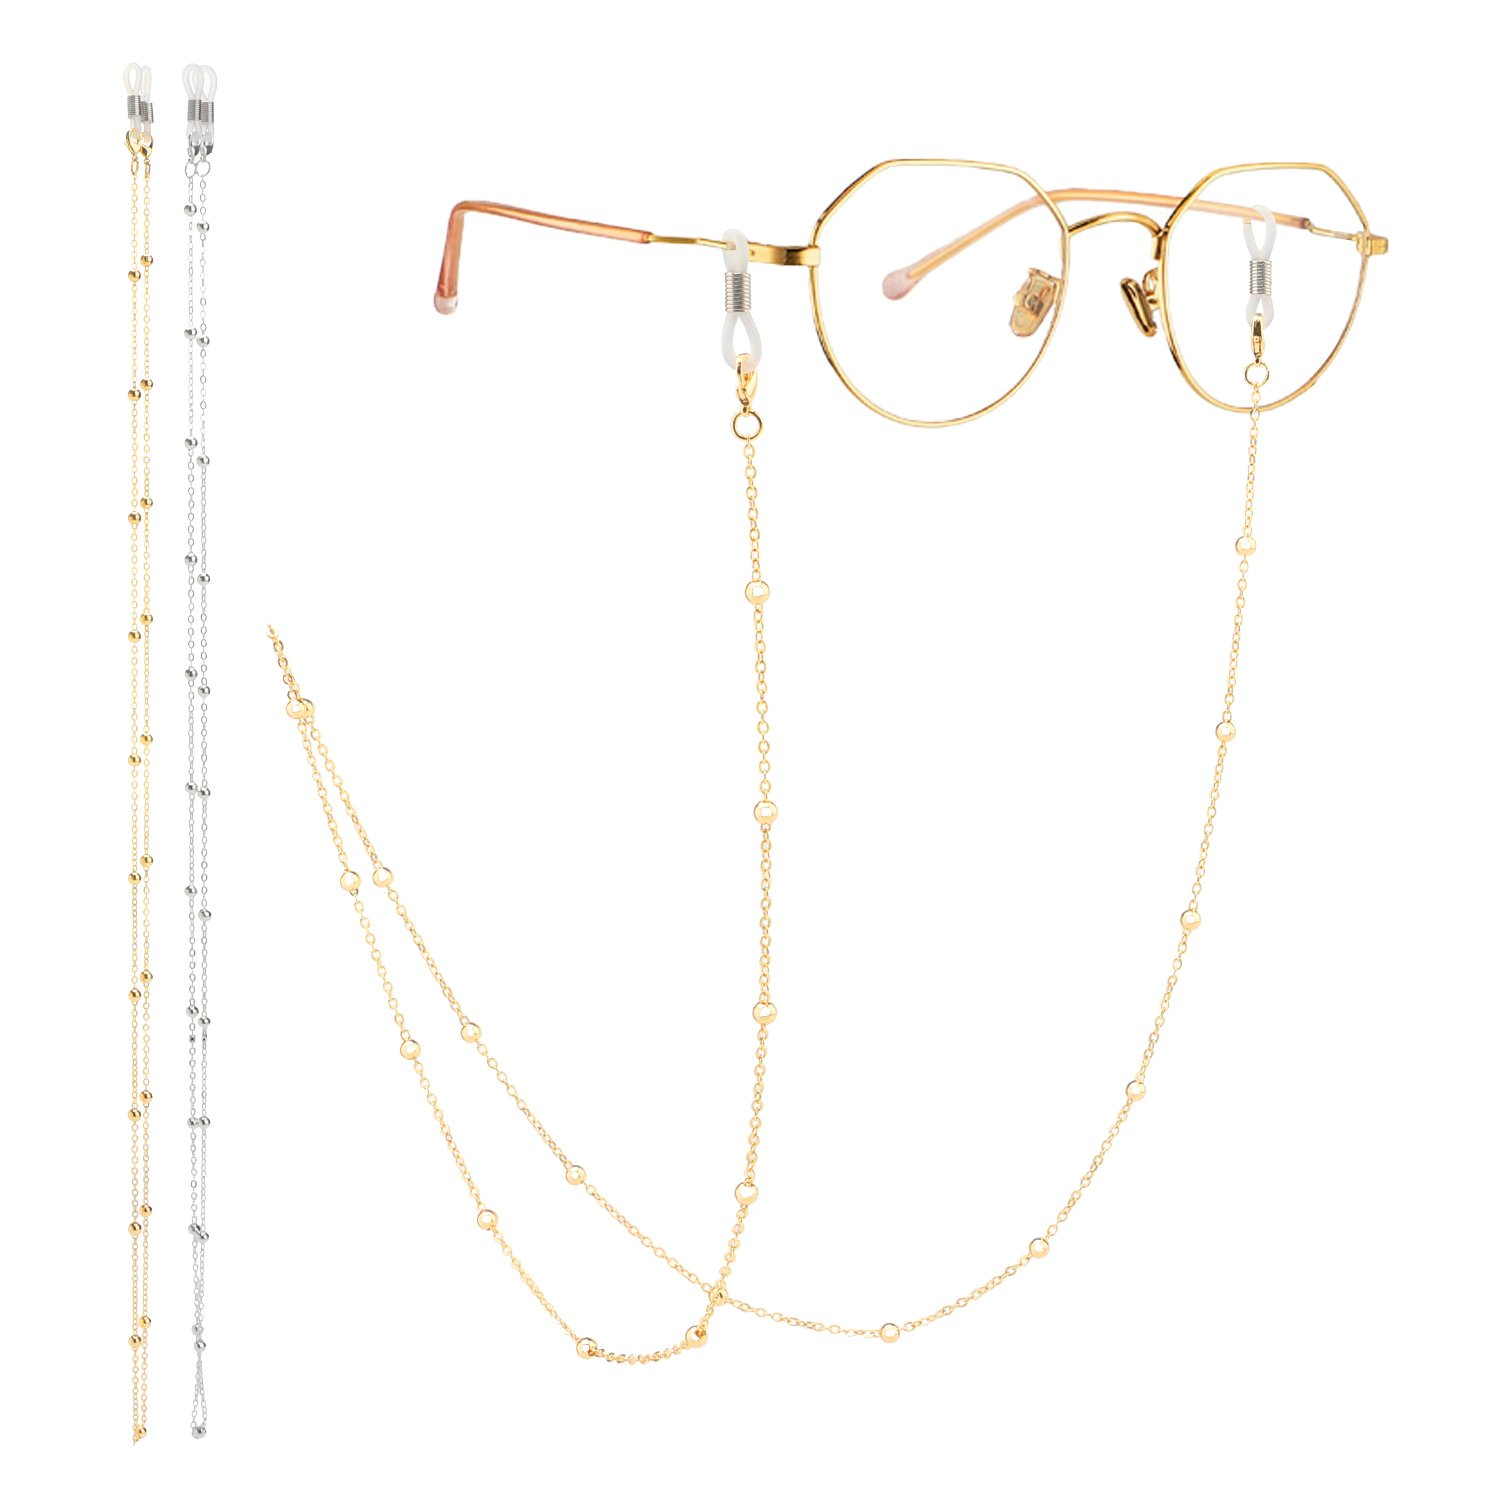 Eyeglass Chain, Segarty 2 Pack Beaded Glasses Cord Sunglasses Lanyard Retainer Strap for Women, Secure Fit For Your Glasses And Eyewear, Gold and Silver